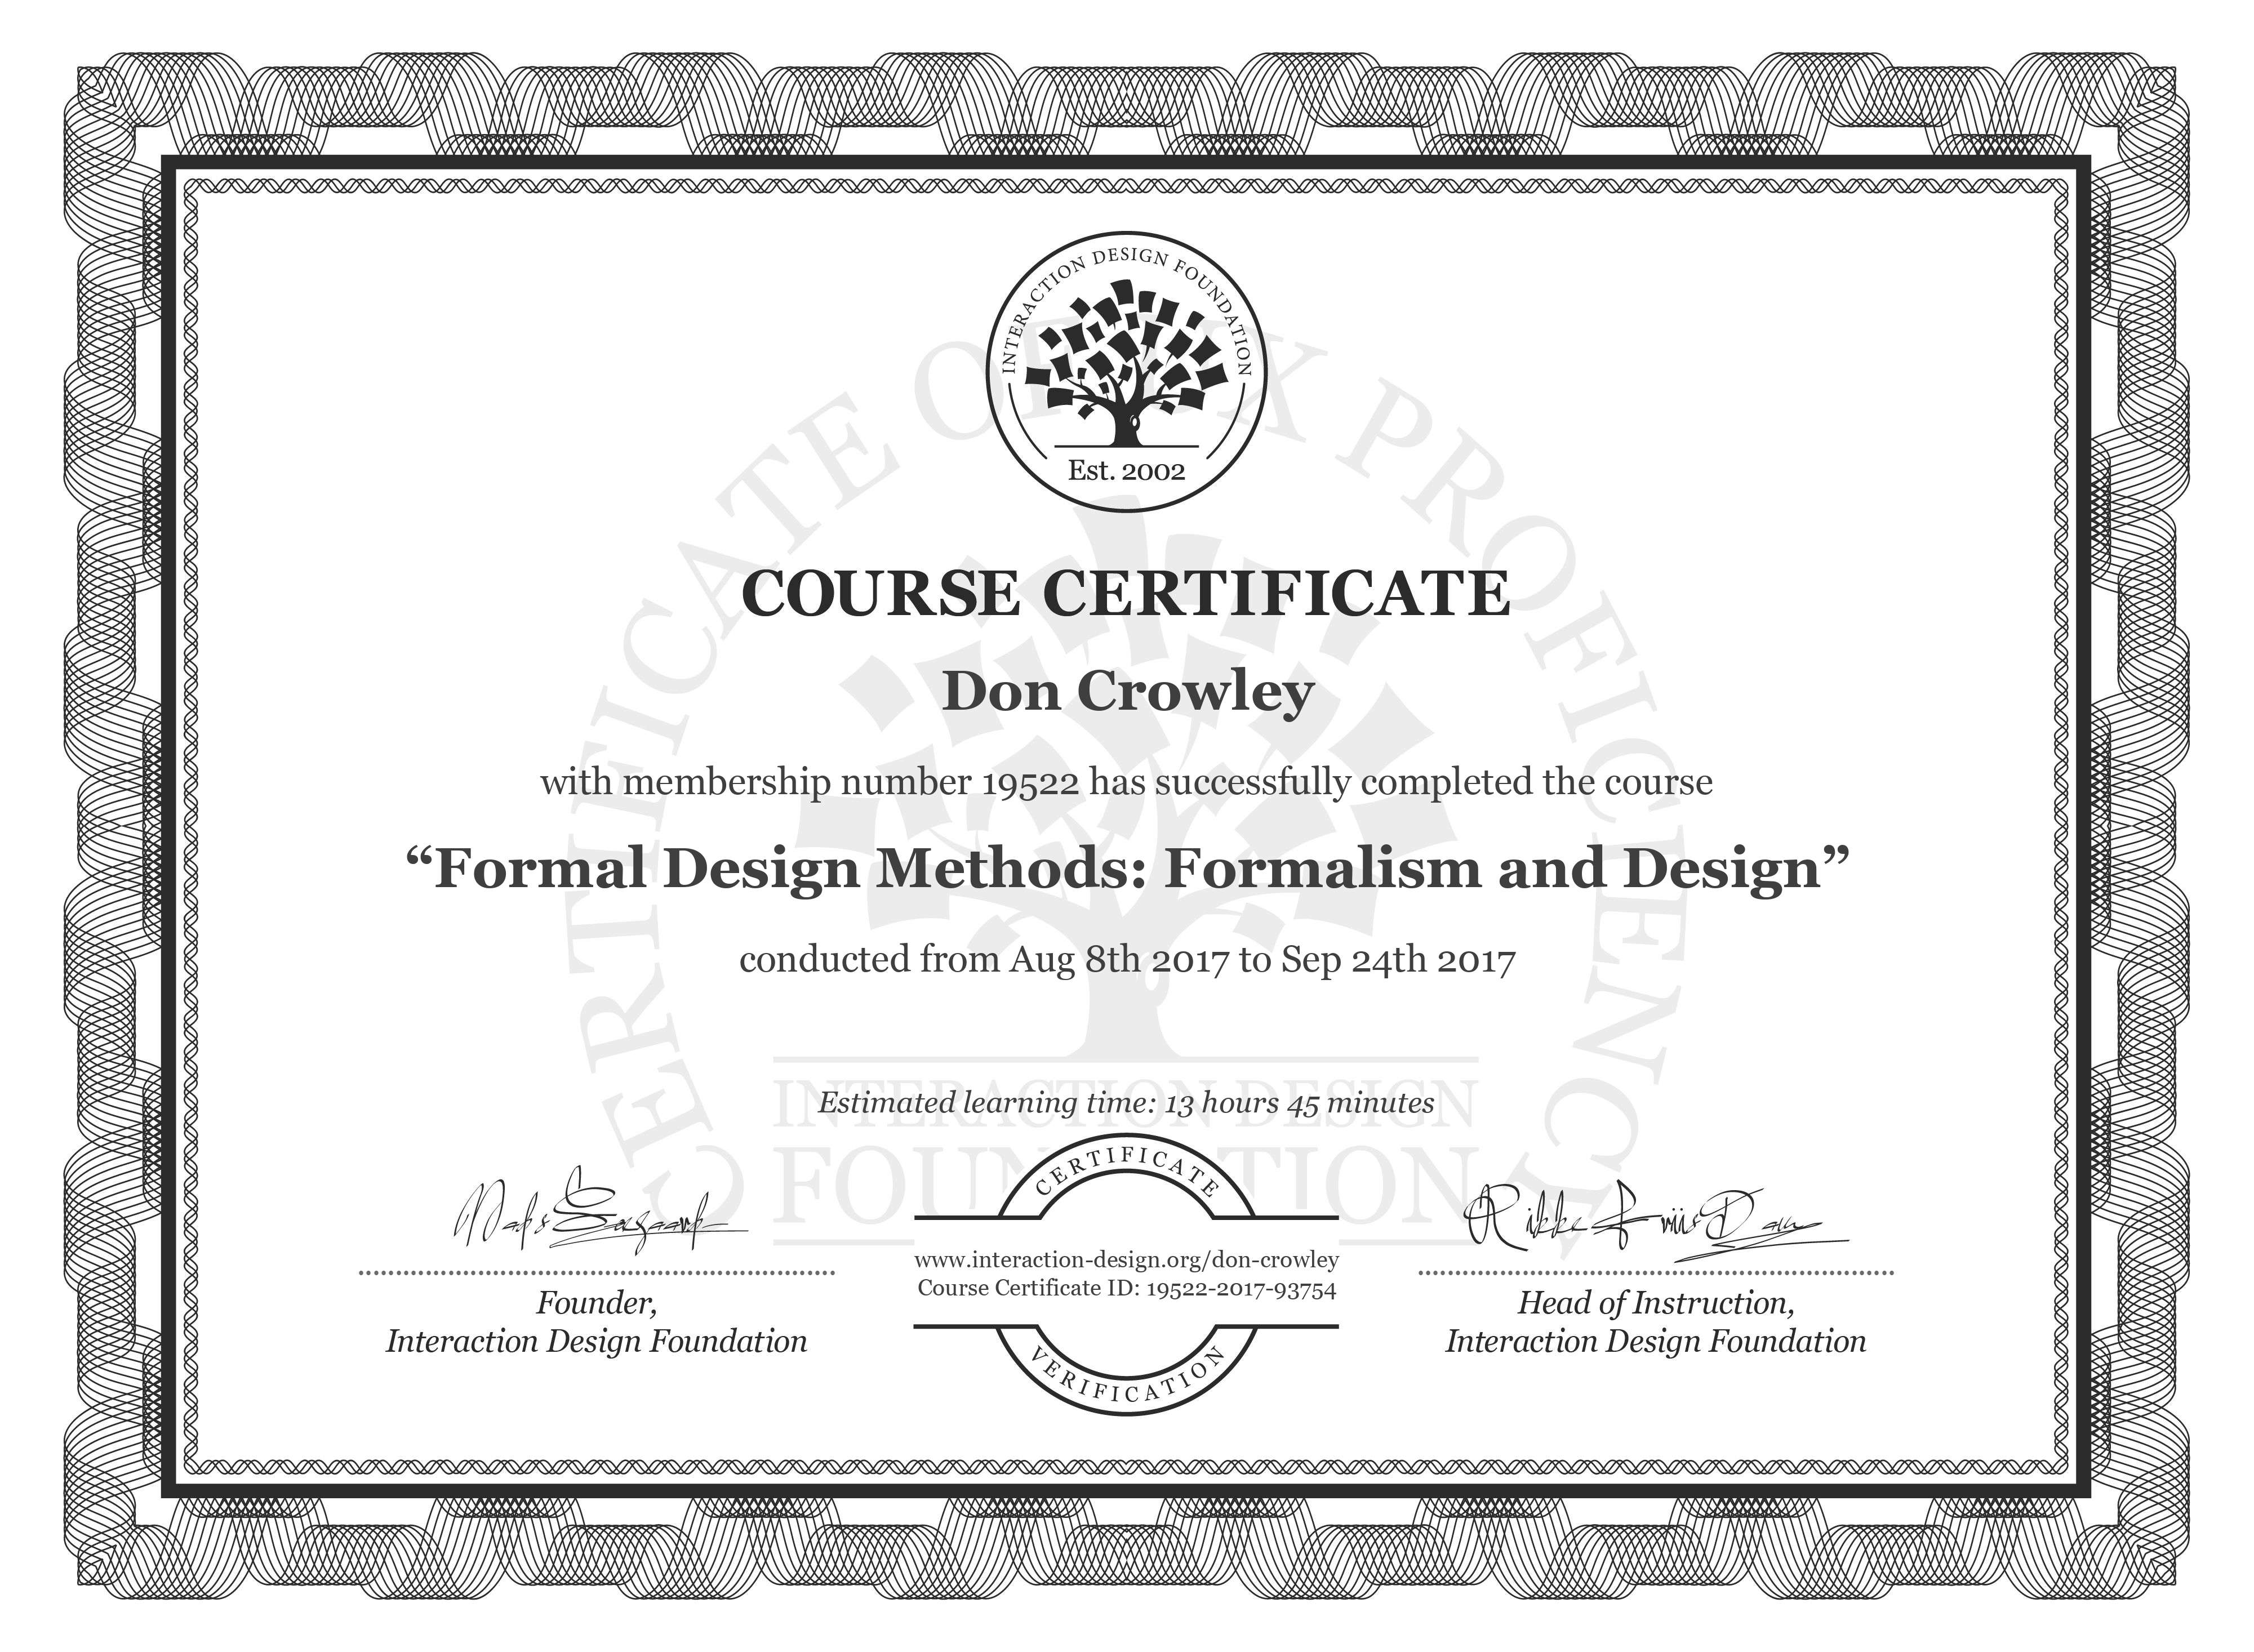 Don Crowley Course Certificate Formal Design Methods